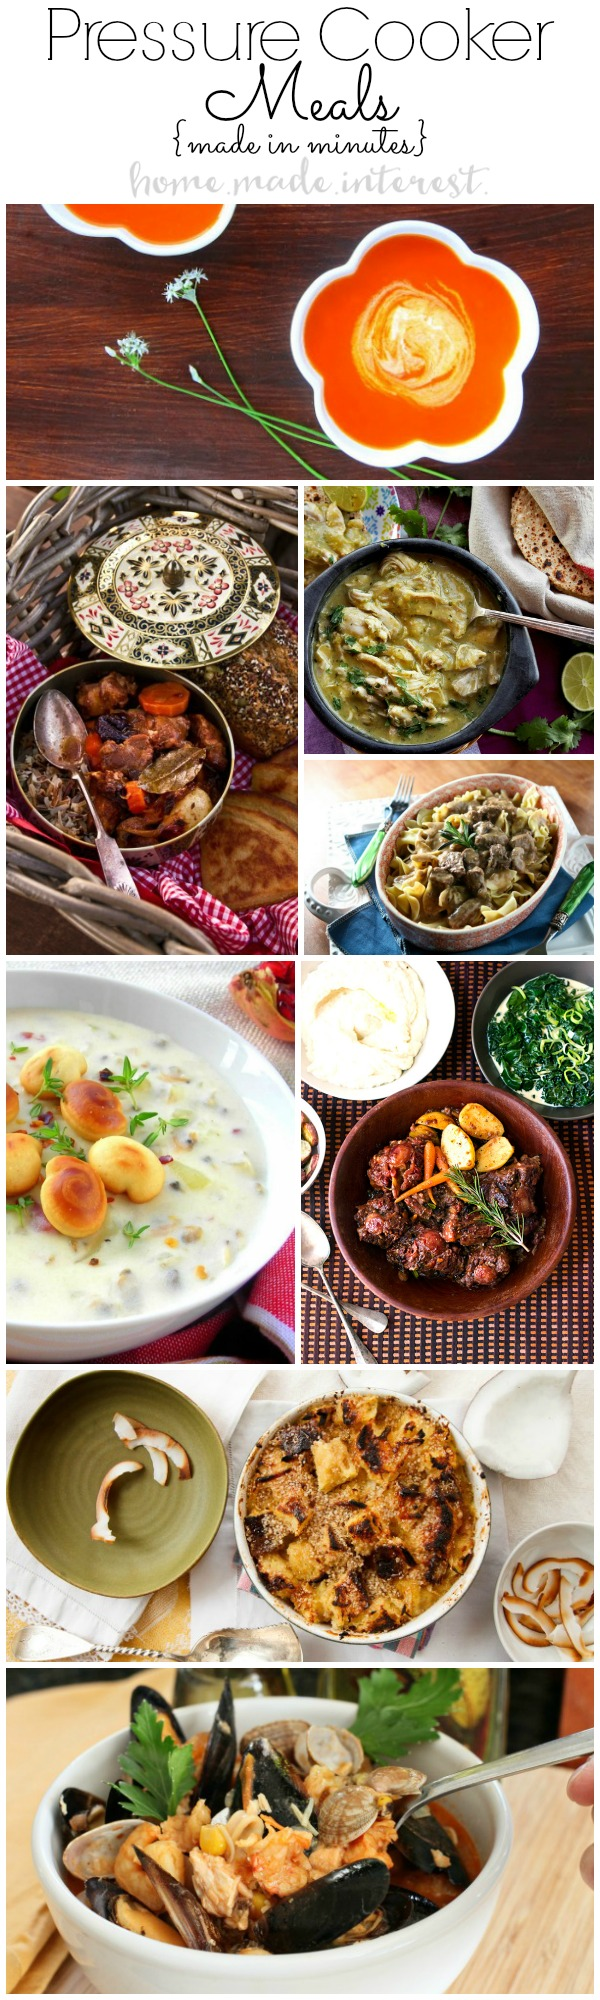 Have weeknight meals made in minutes by using a pressure cooker. These quick and easy one pot recipes use a pressure cooker to make cooking dinner a breeze.